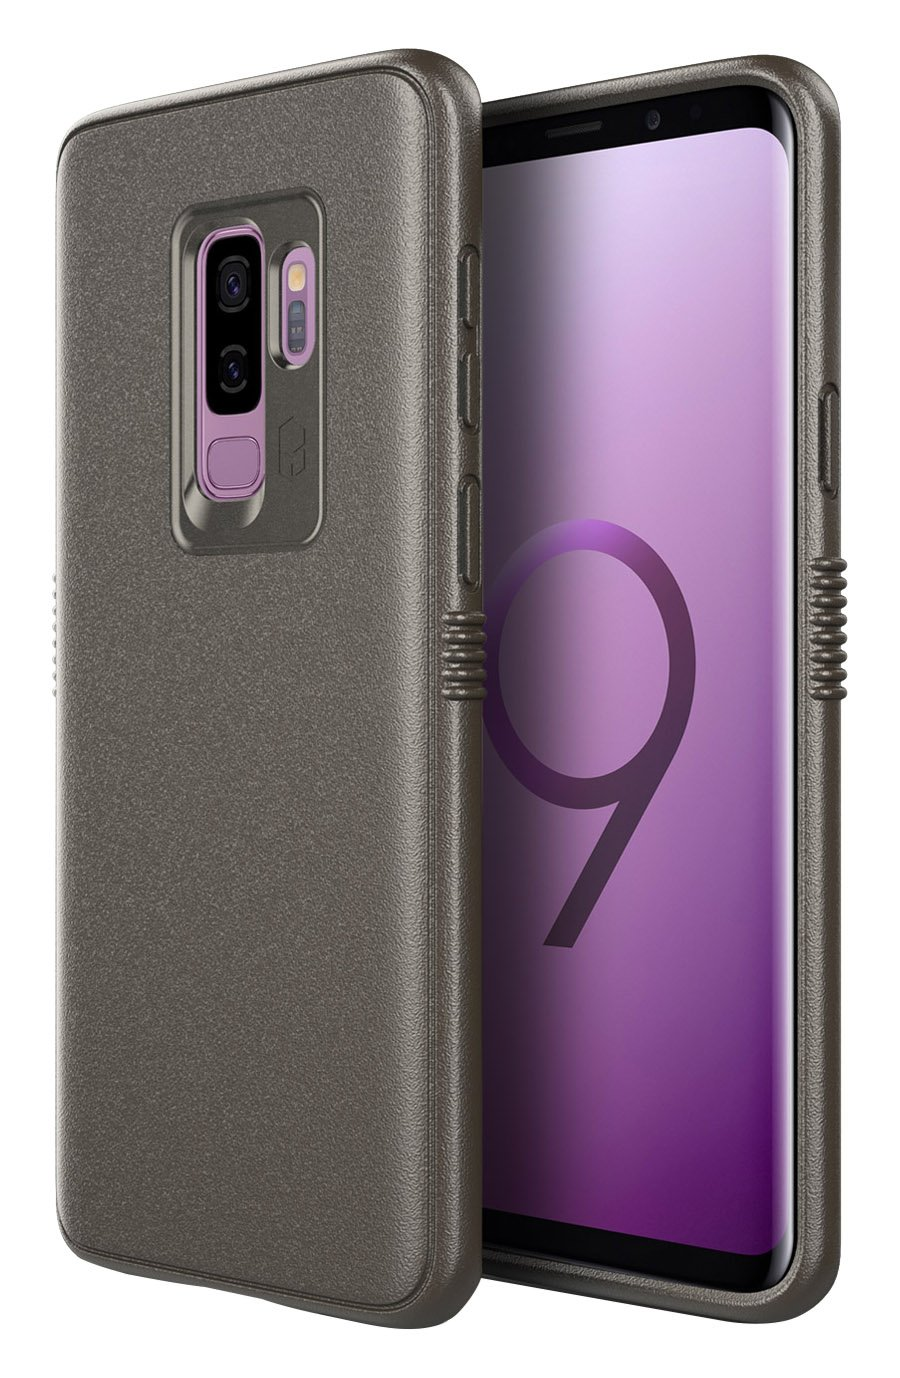 PATCHWORKS One Piece TPU PC Hybrid Dual Material Matte Extreme Grip Slim Fit with Added Air Pocket and Drop Tested Hard Case for Galaxy S9 Plus